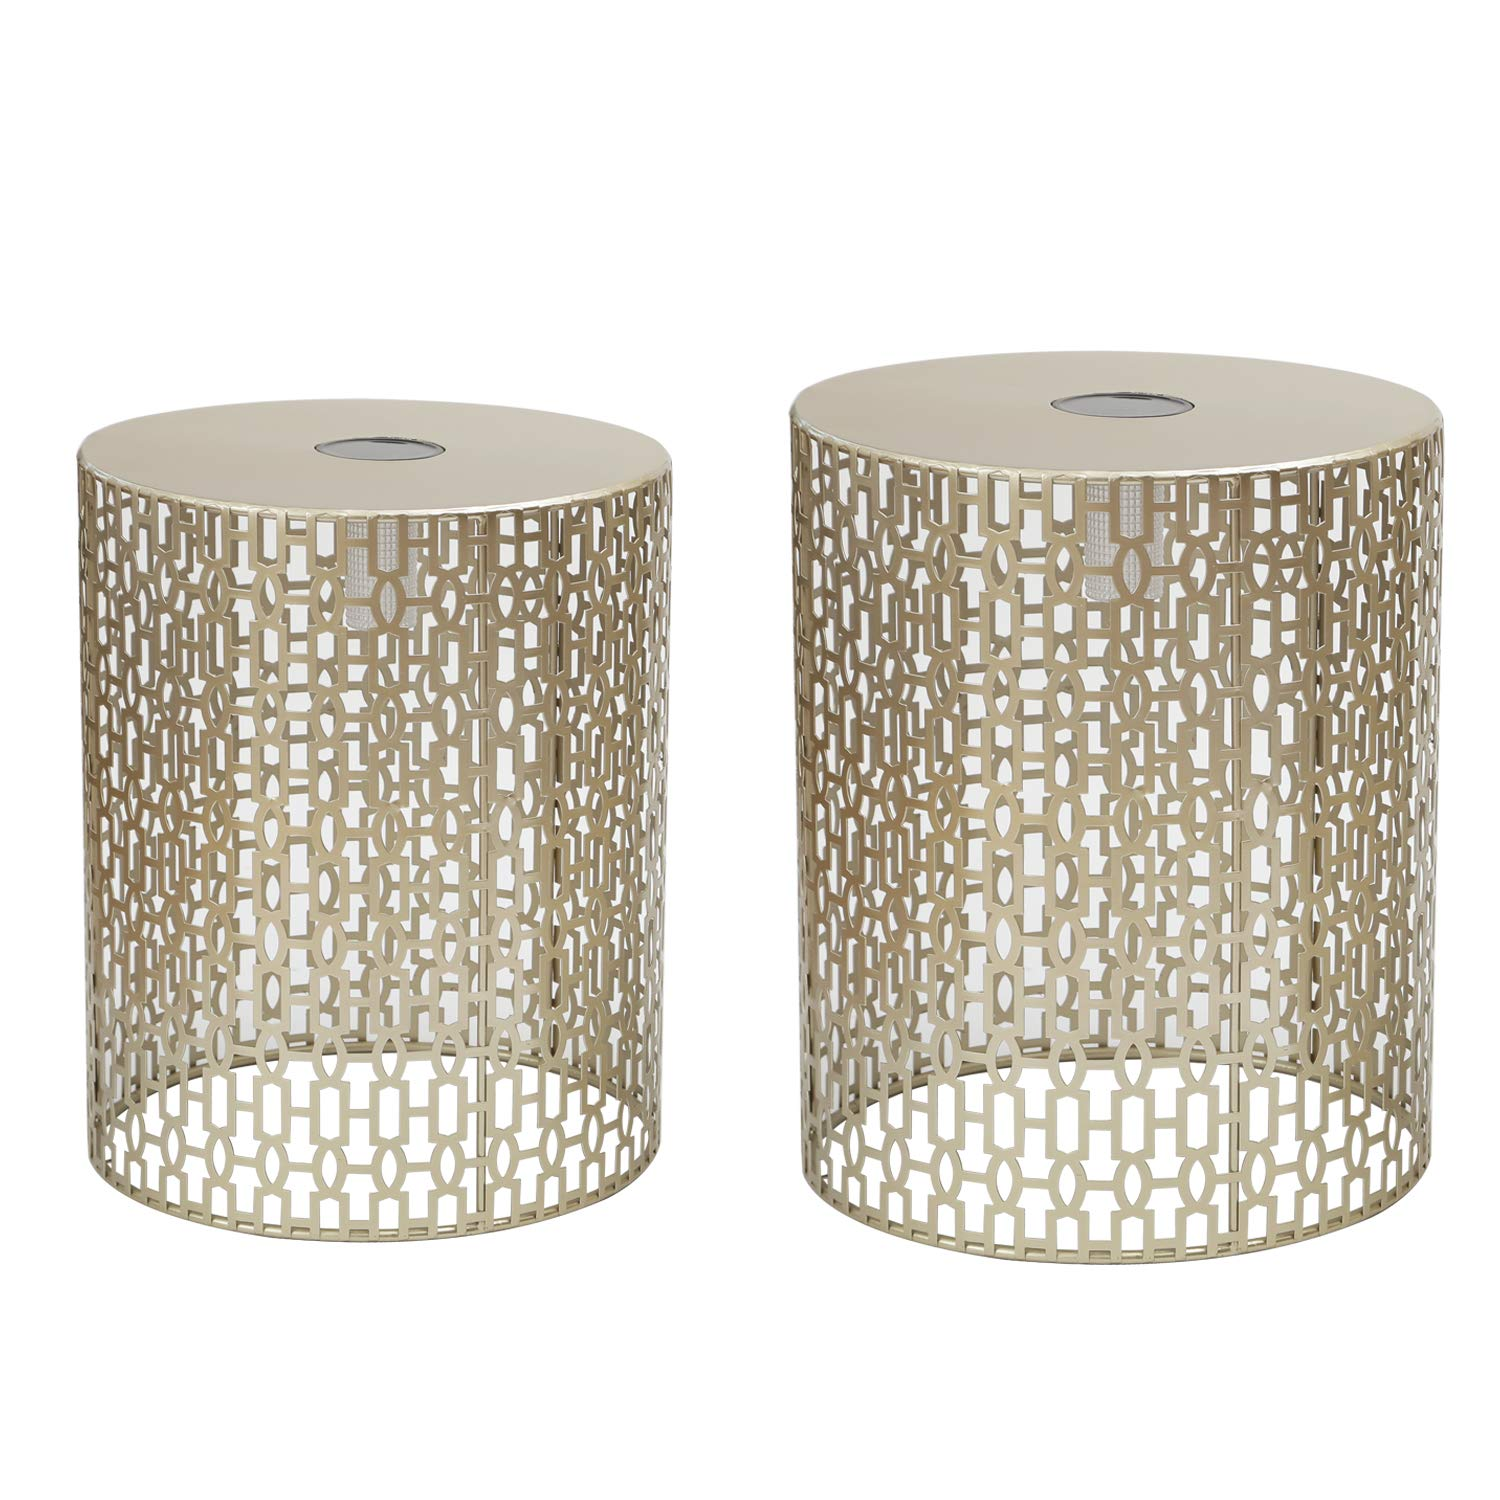 Adeco Decorative Nesting Round Side End Accent Coffee Table, Side Table. Nightstand, Set of 2 (Gold-LED) FT0239